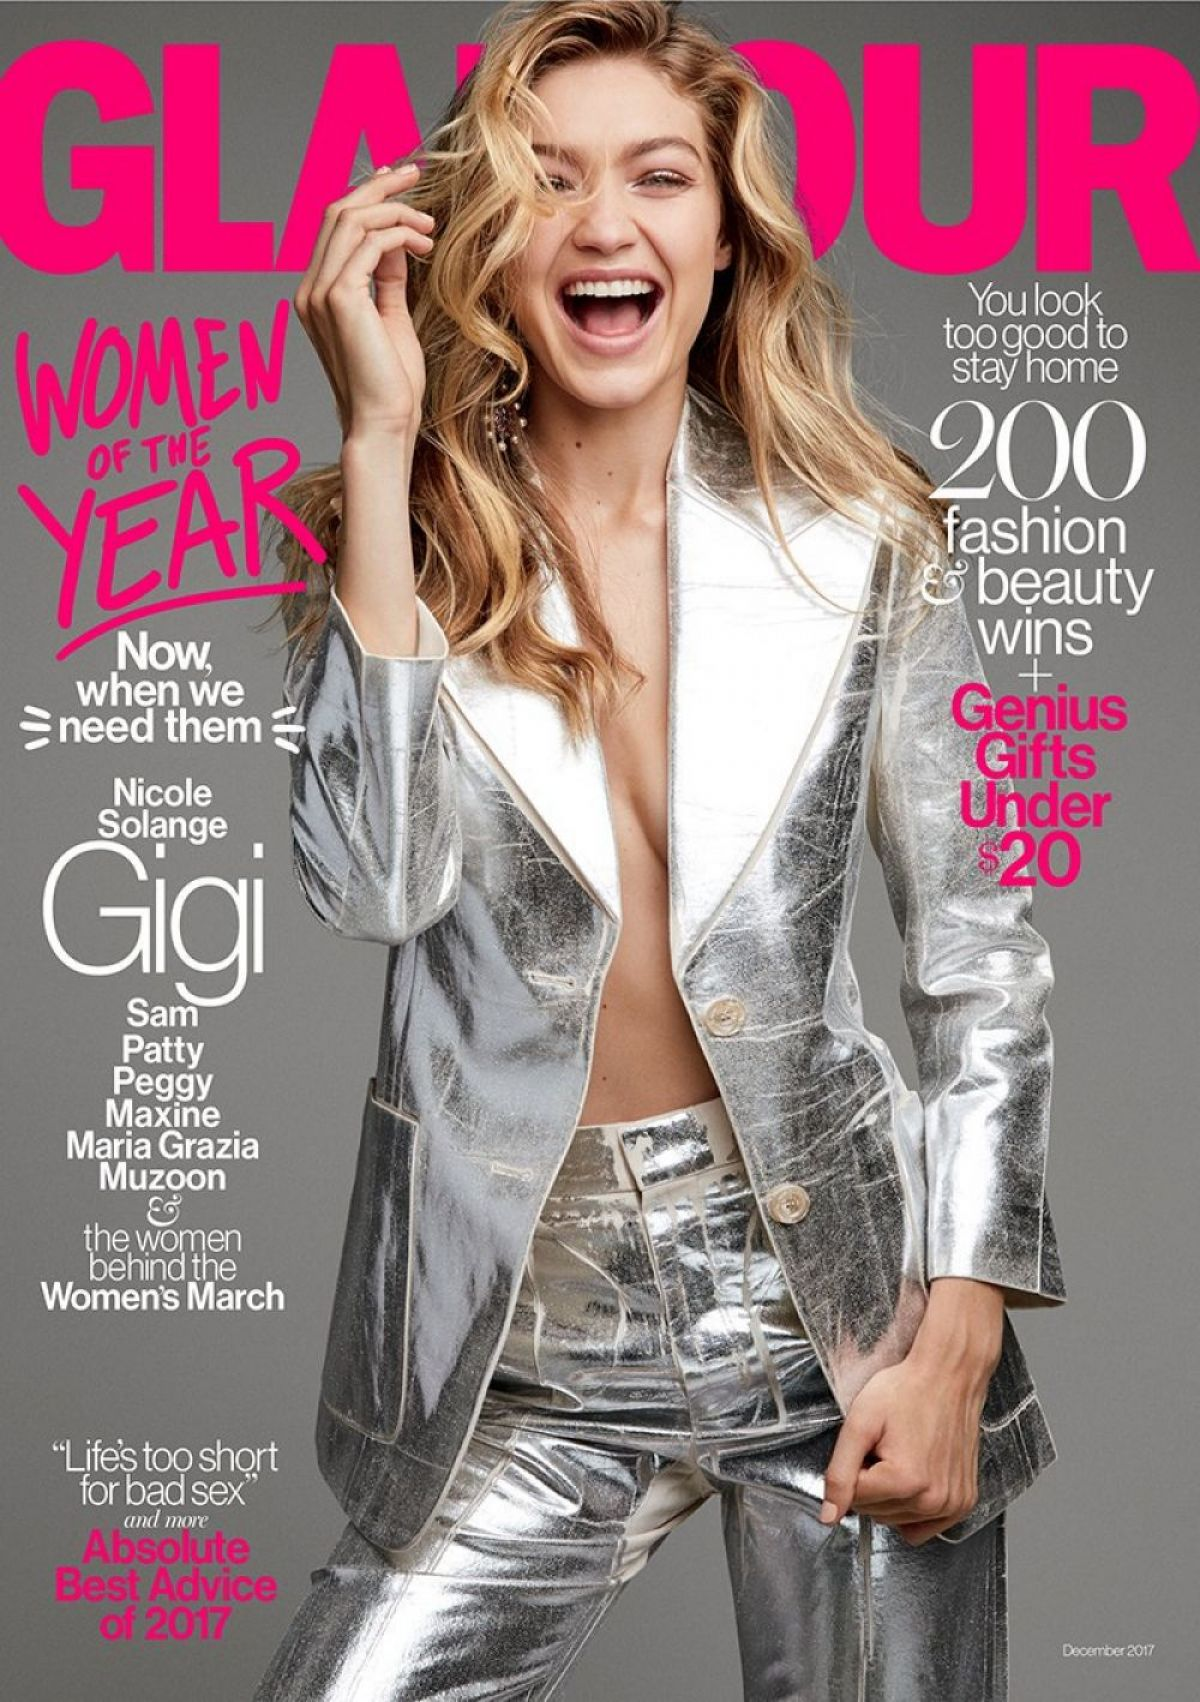 Gigi Hadid - Glamour Magazine, Women of the Year Issue, December 2017